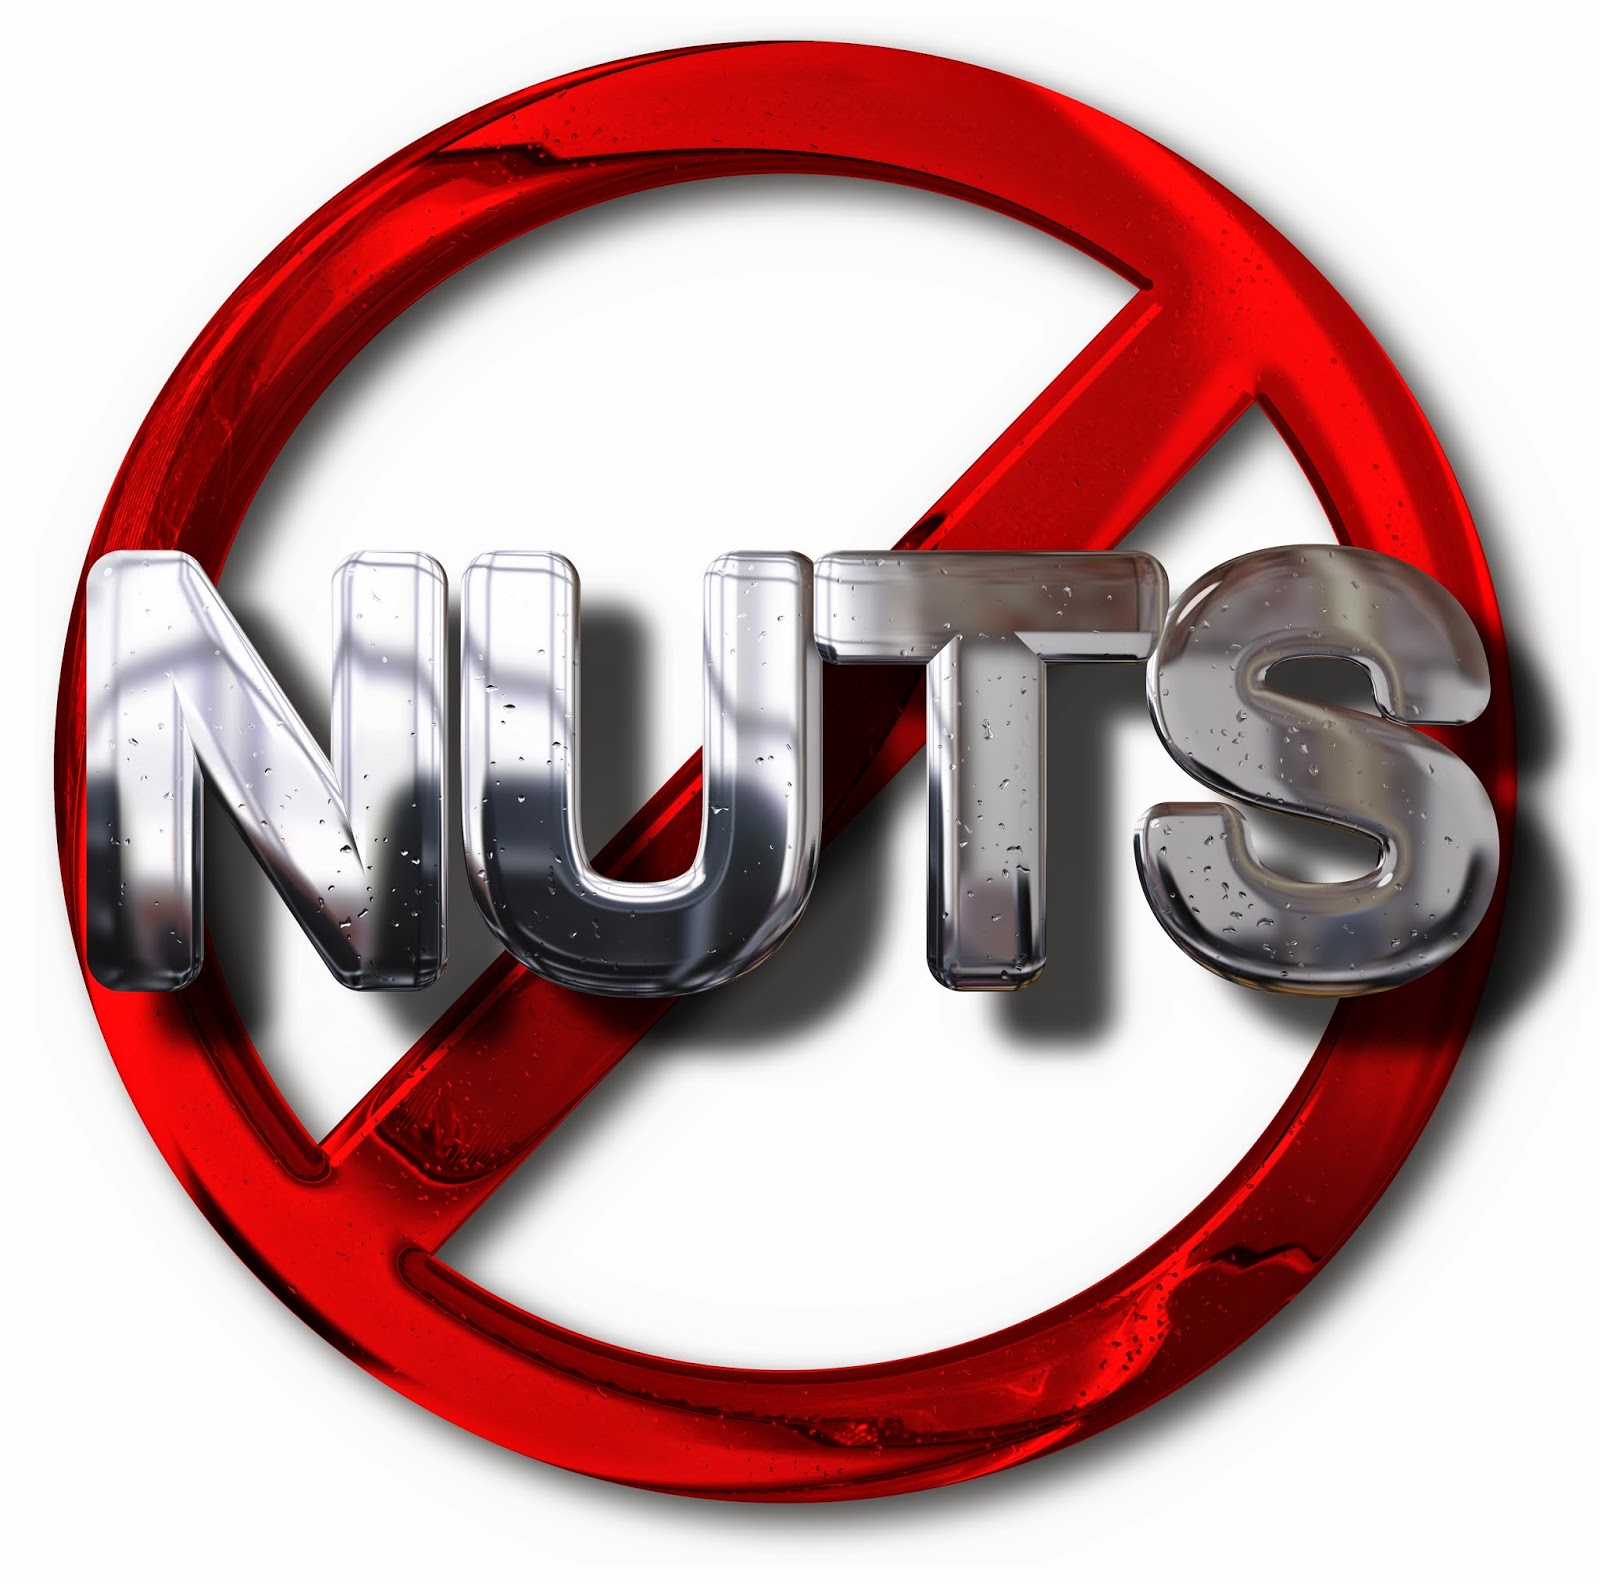 Excellent Coconut Free Products Or Tree Nut Free Products For Allergy Sufferers. Not everyone can tolerate products with tree nuts.